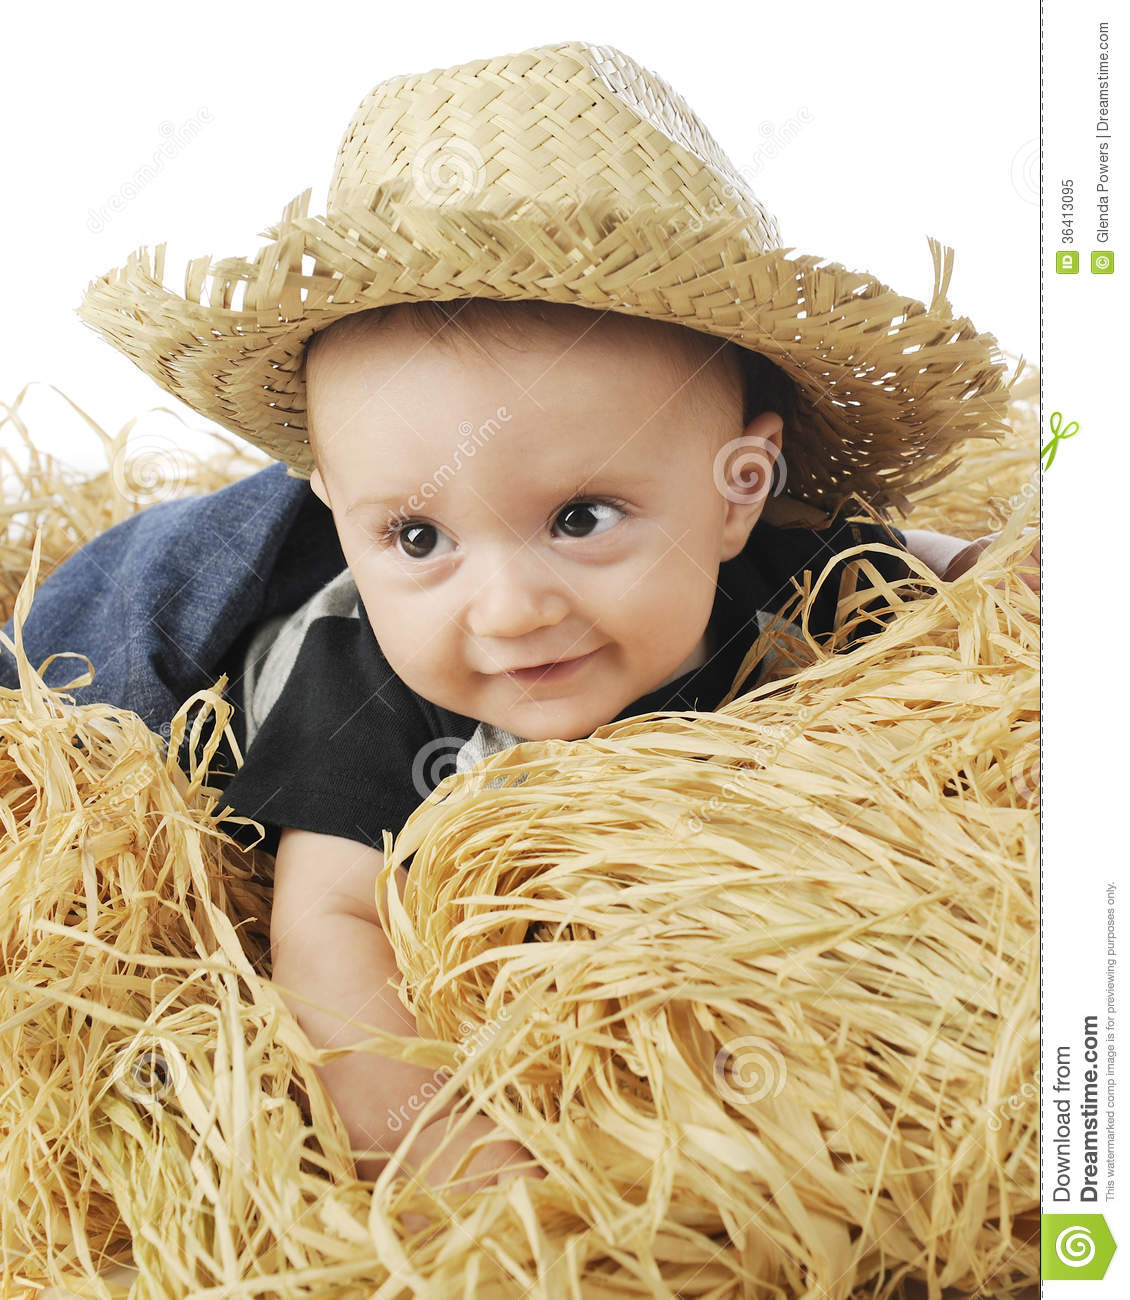 Browse a wide variety of toddlers' sun hats, including floppy wide brim, stylish bucket summer hats, glamorous straw or the always classic fedora. Great fashion isn't just for adults. A cute sun hat for babies will complement any infant's outfit, while adding a hint of adult sophistication. These cool hats for baby boys and girls are.